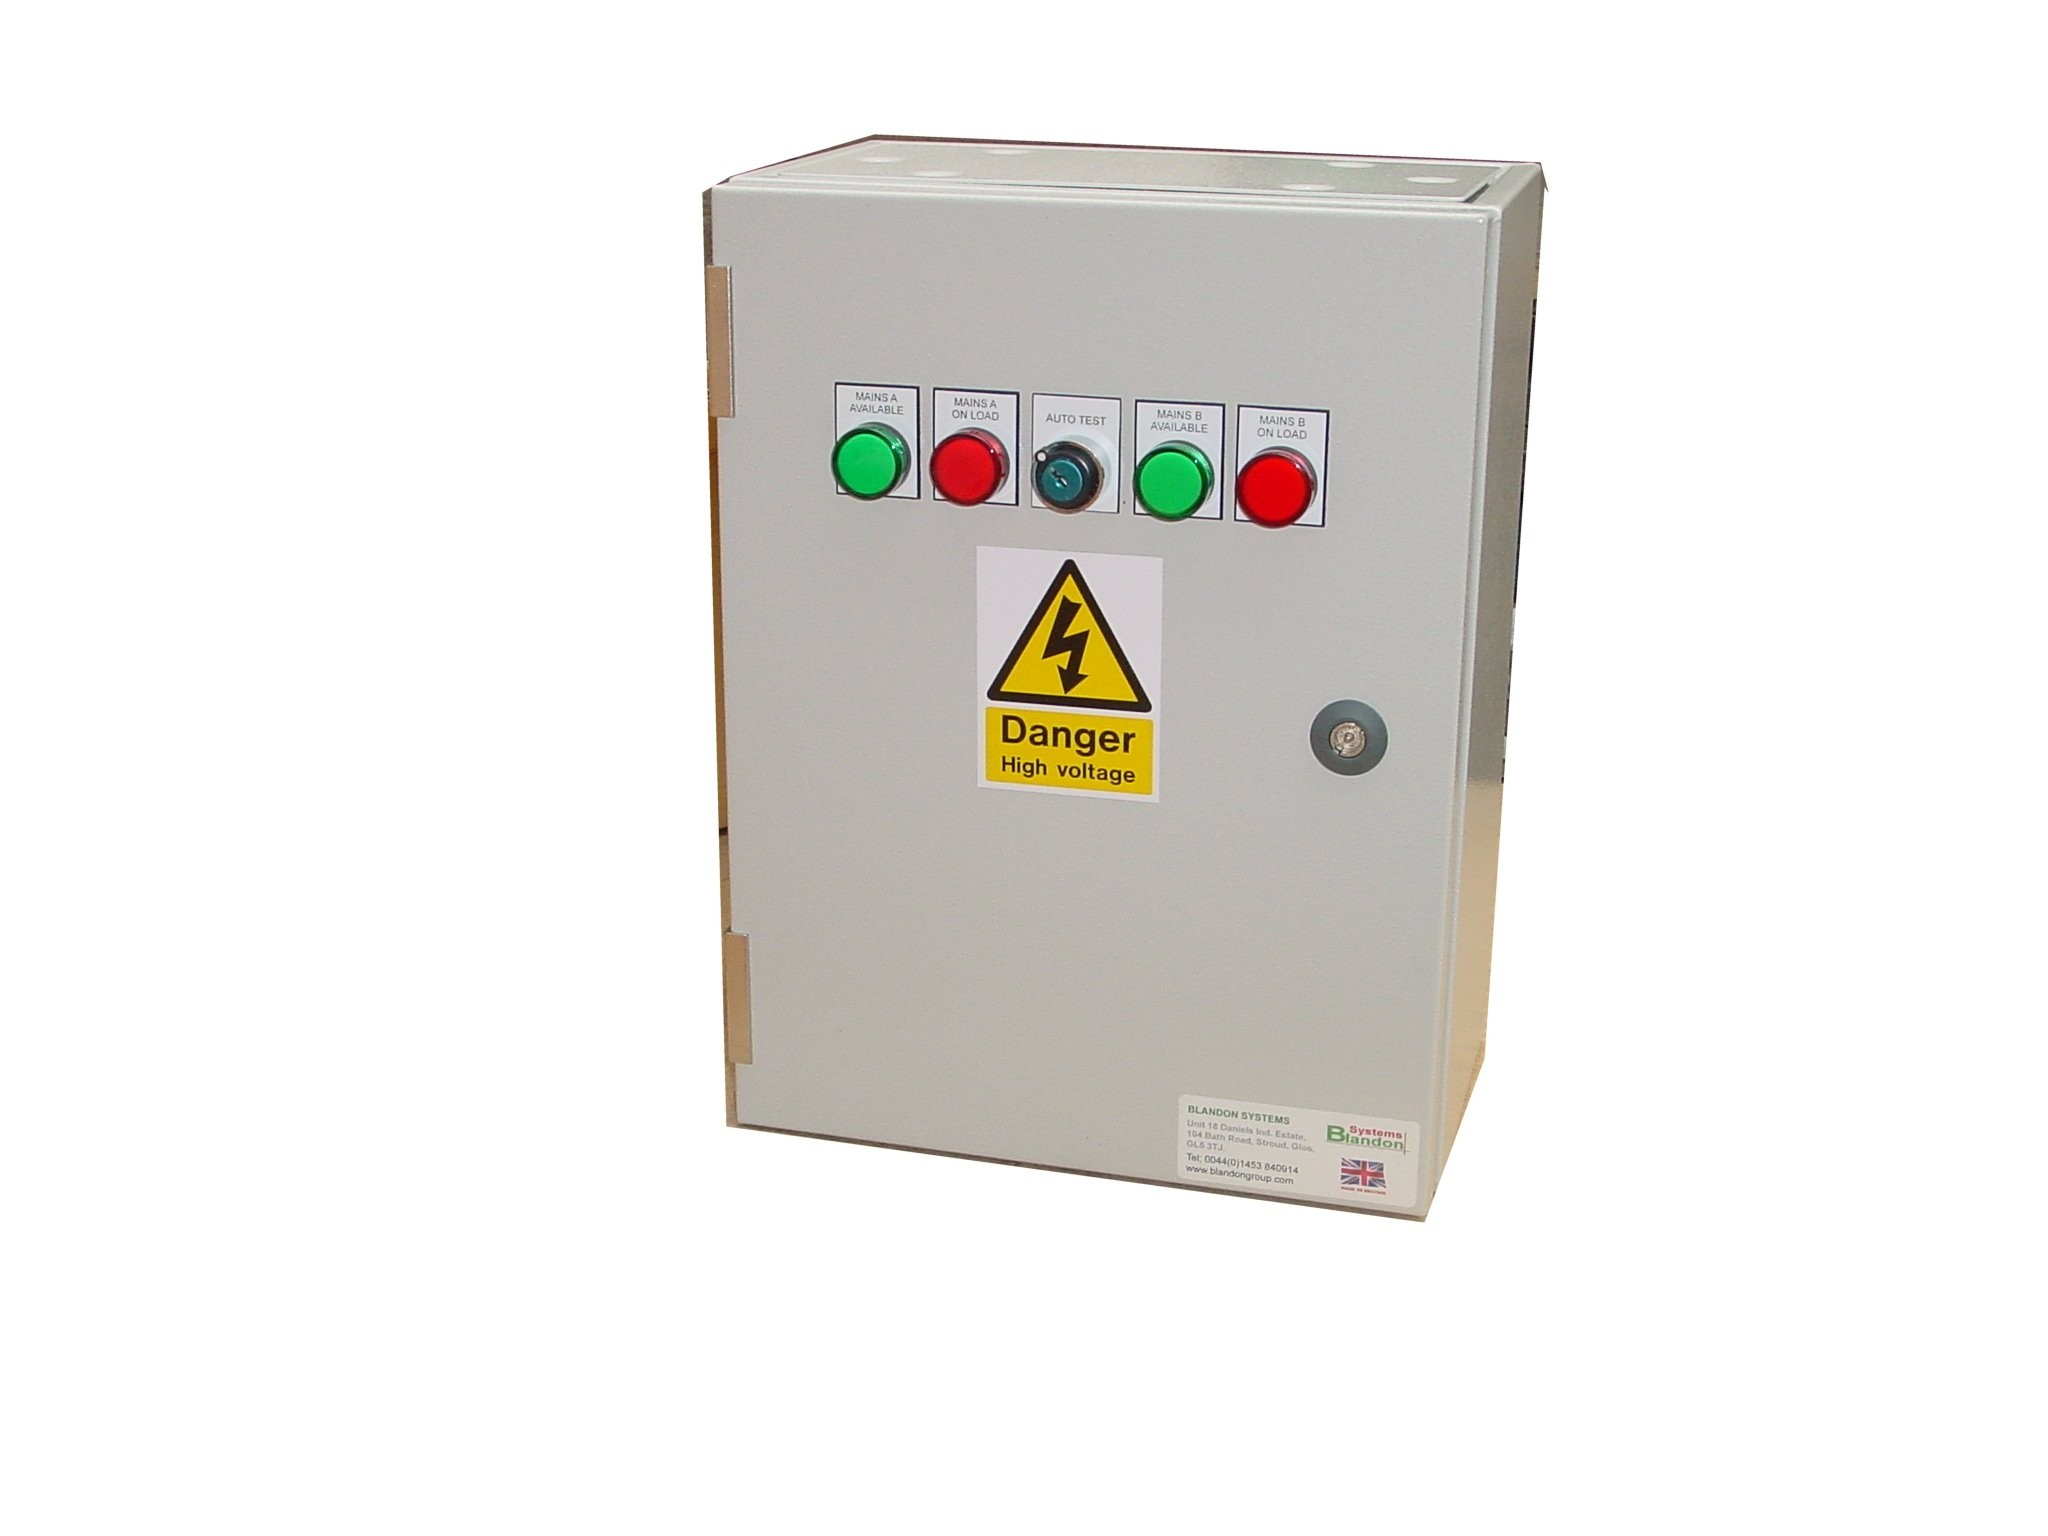 100A ATS 3 Phase Mains-Mains 400V, UVR Controlled, ABB Contactors